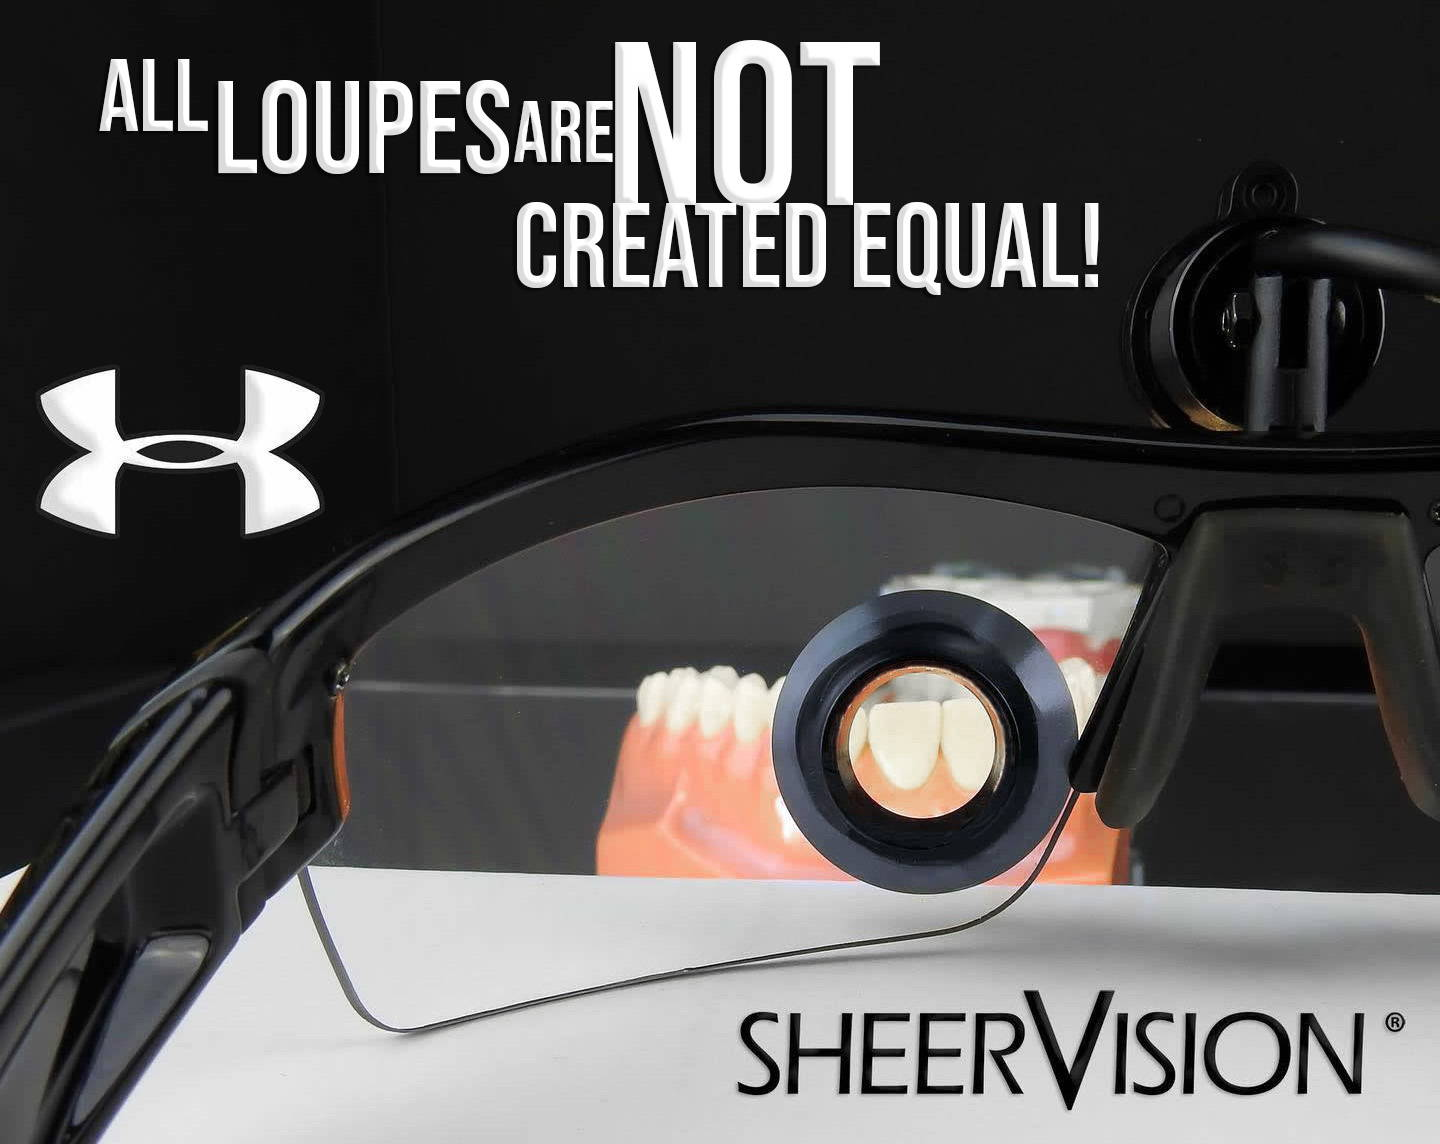 SheerVision's Best Selling Customized TTL  Dental Loupes - Offered With Our Best Deals